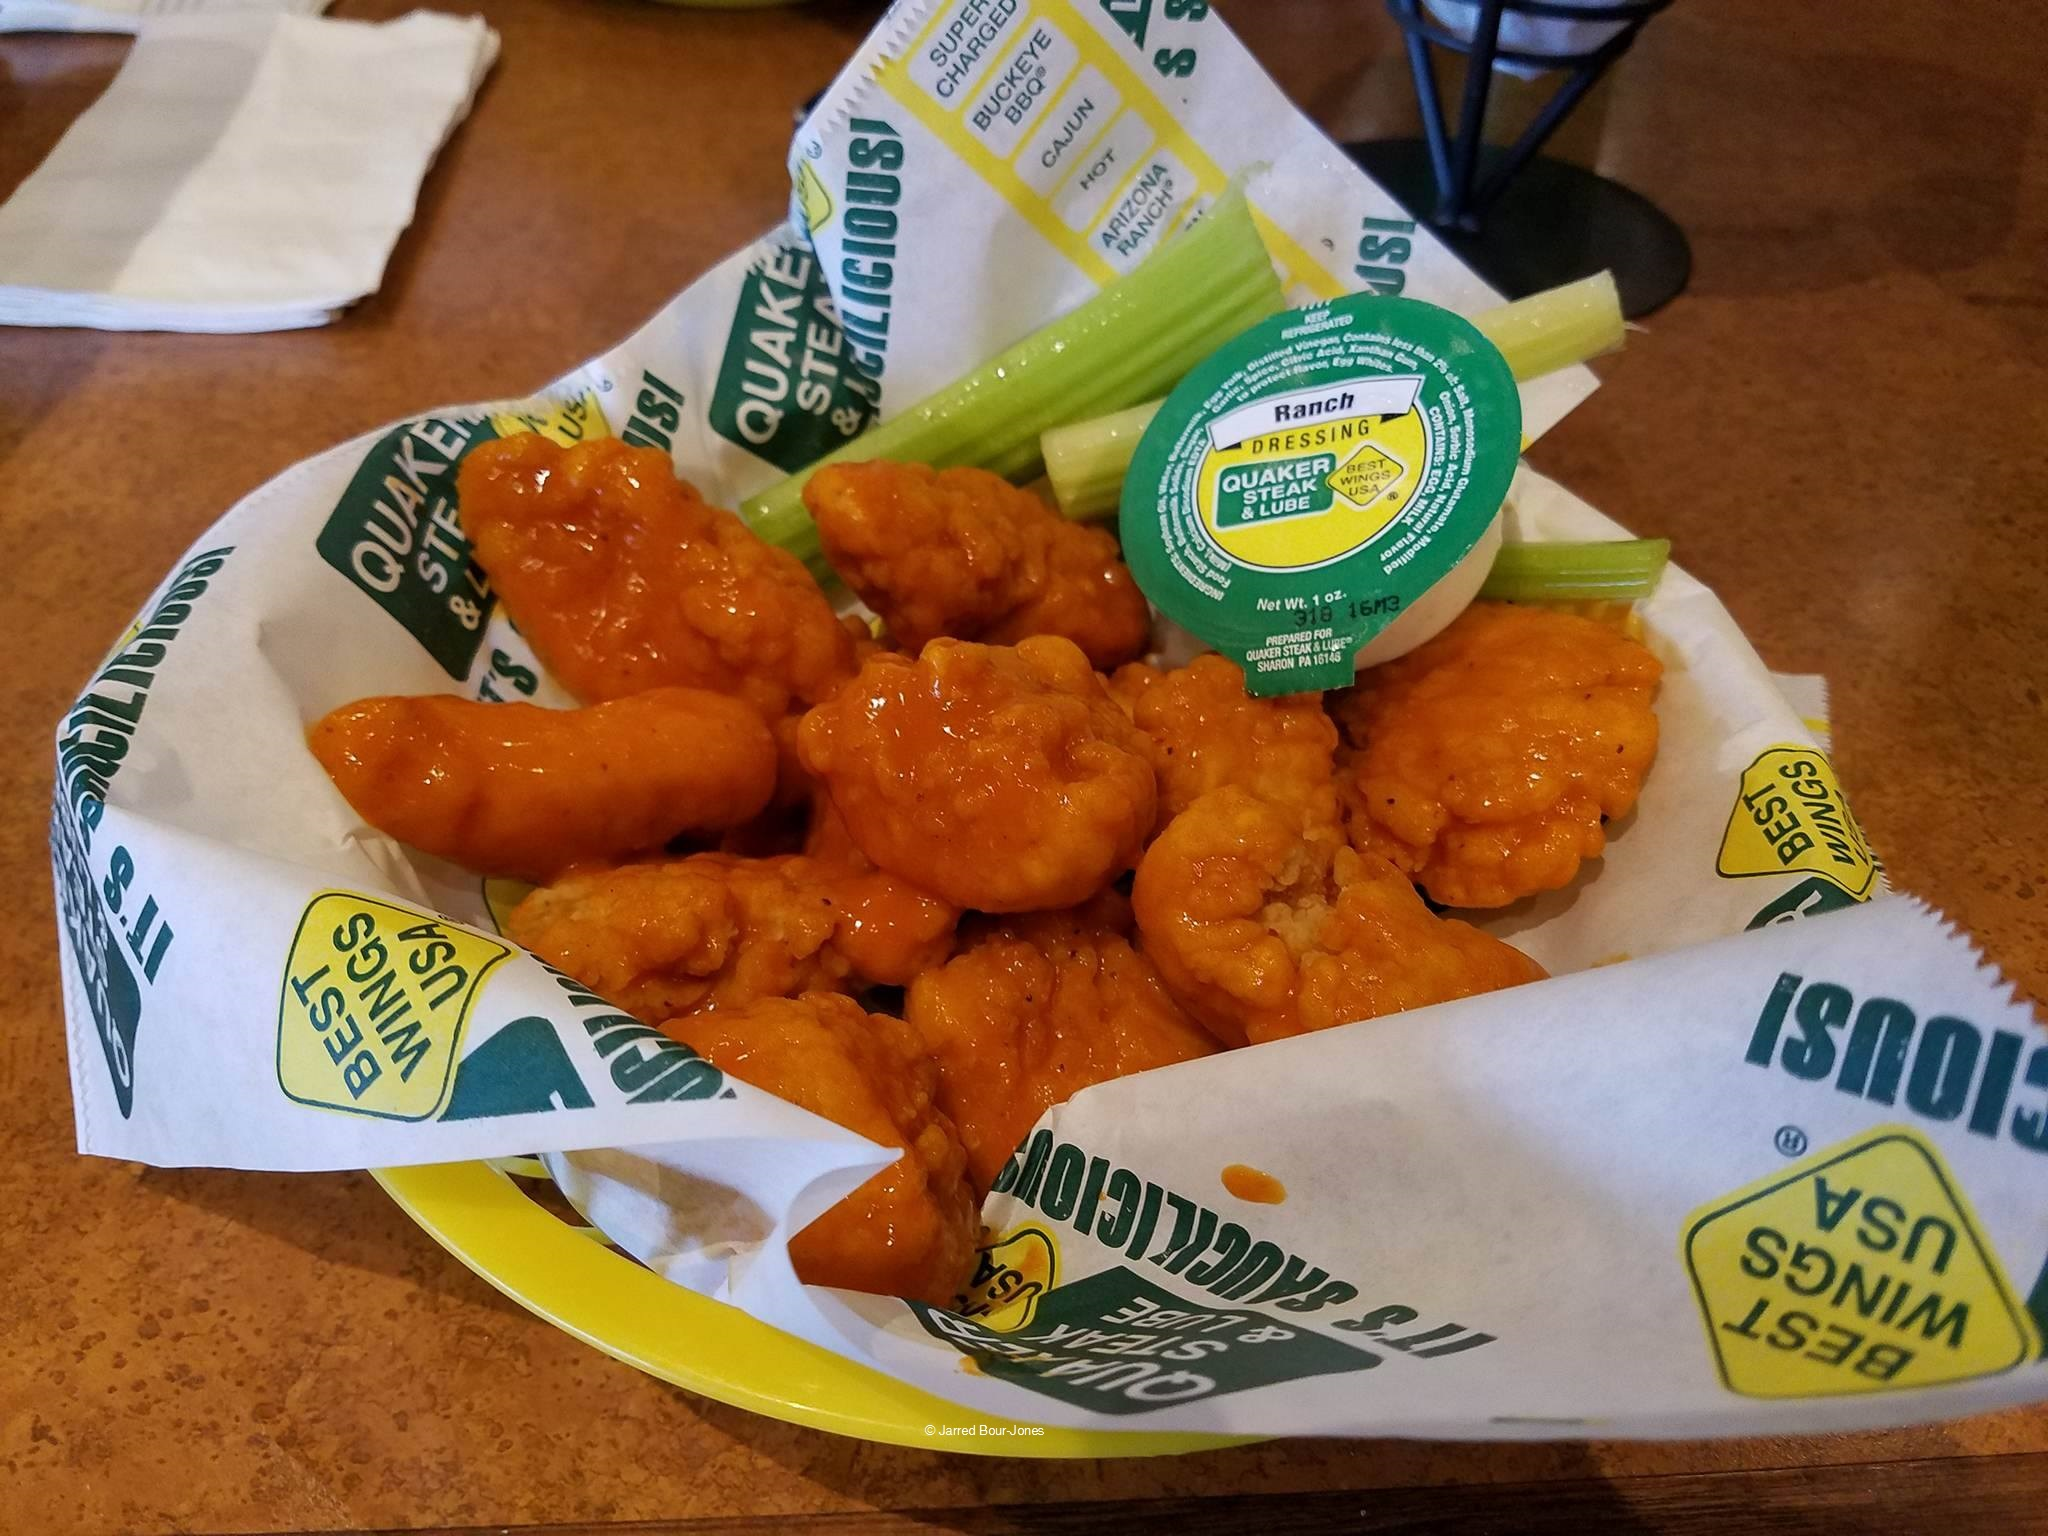 170104 Cedar Point Quaker Steak Lube Hot Boneless Wings ©Jarred Bour-Jones